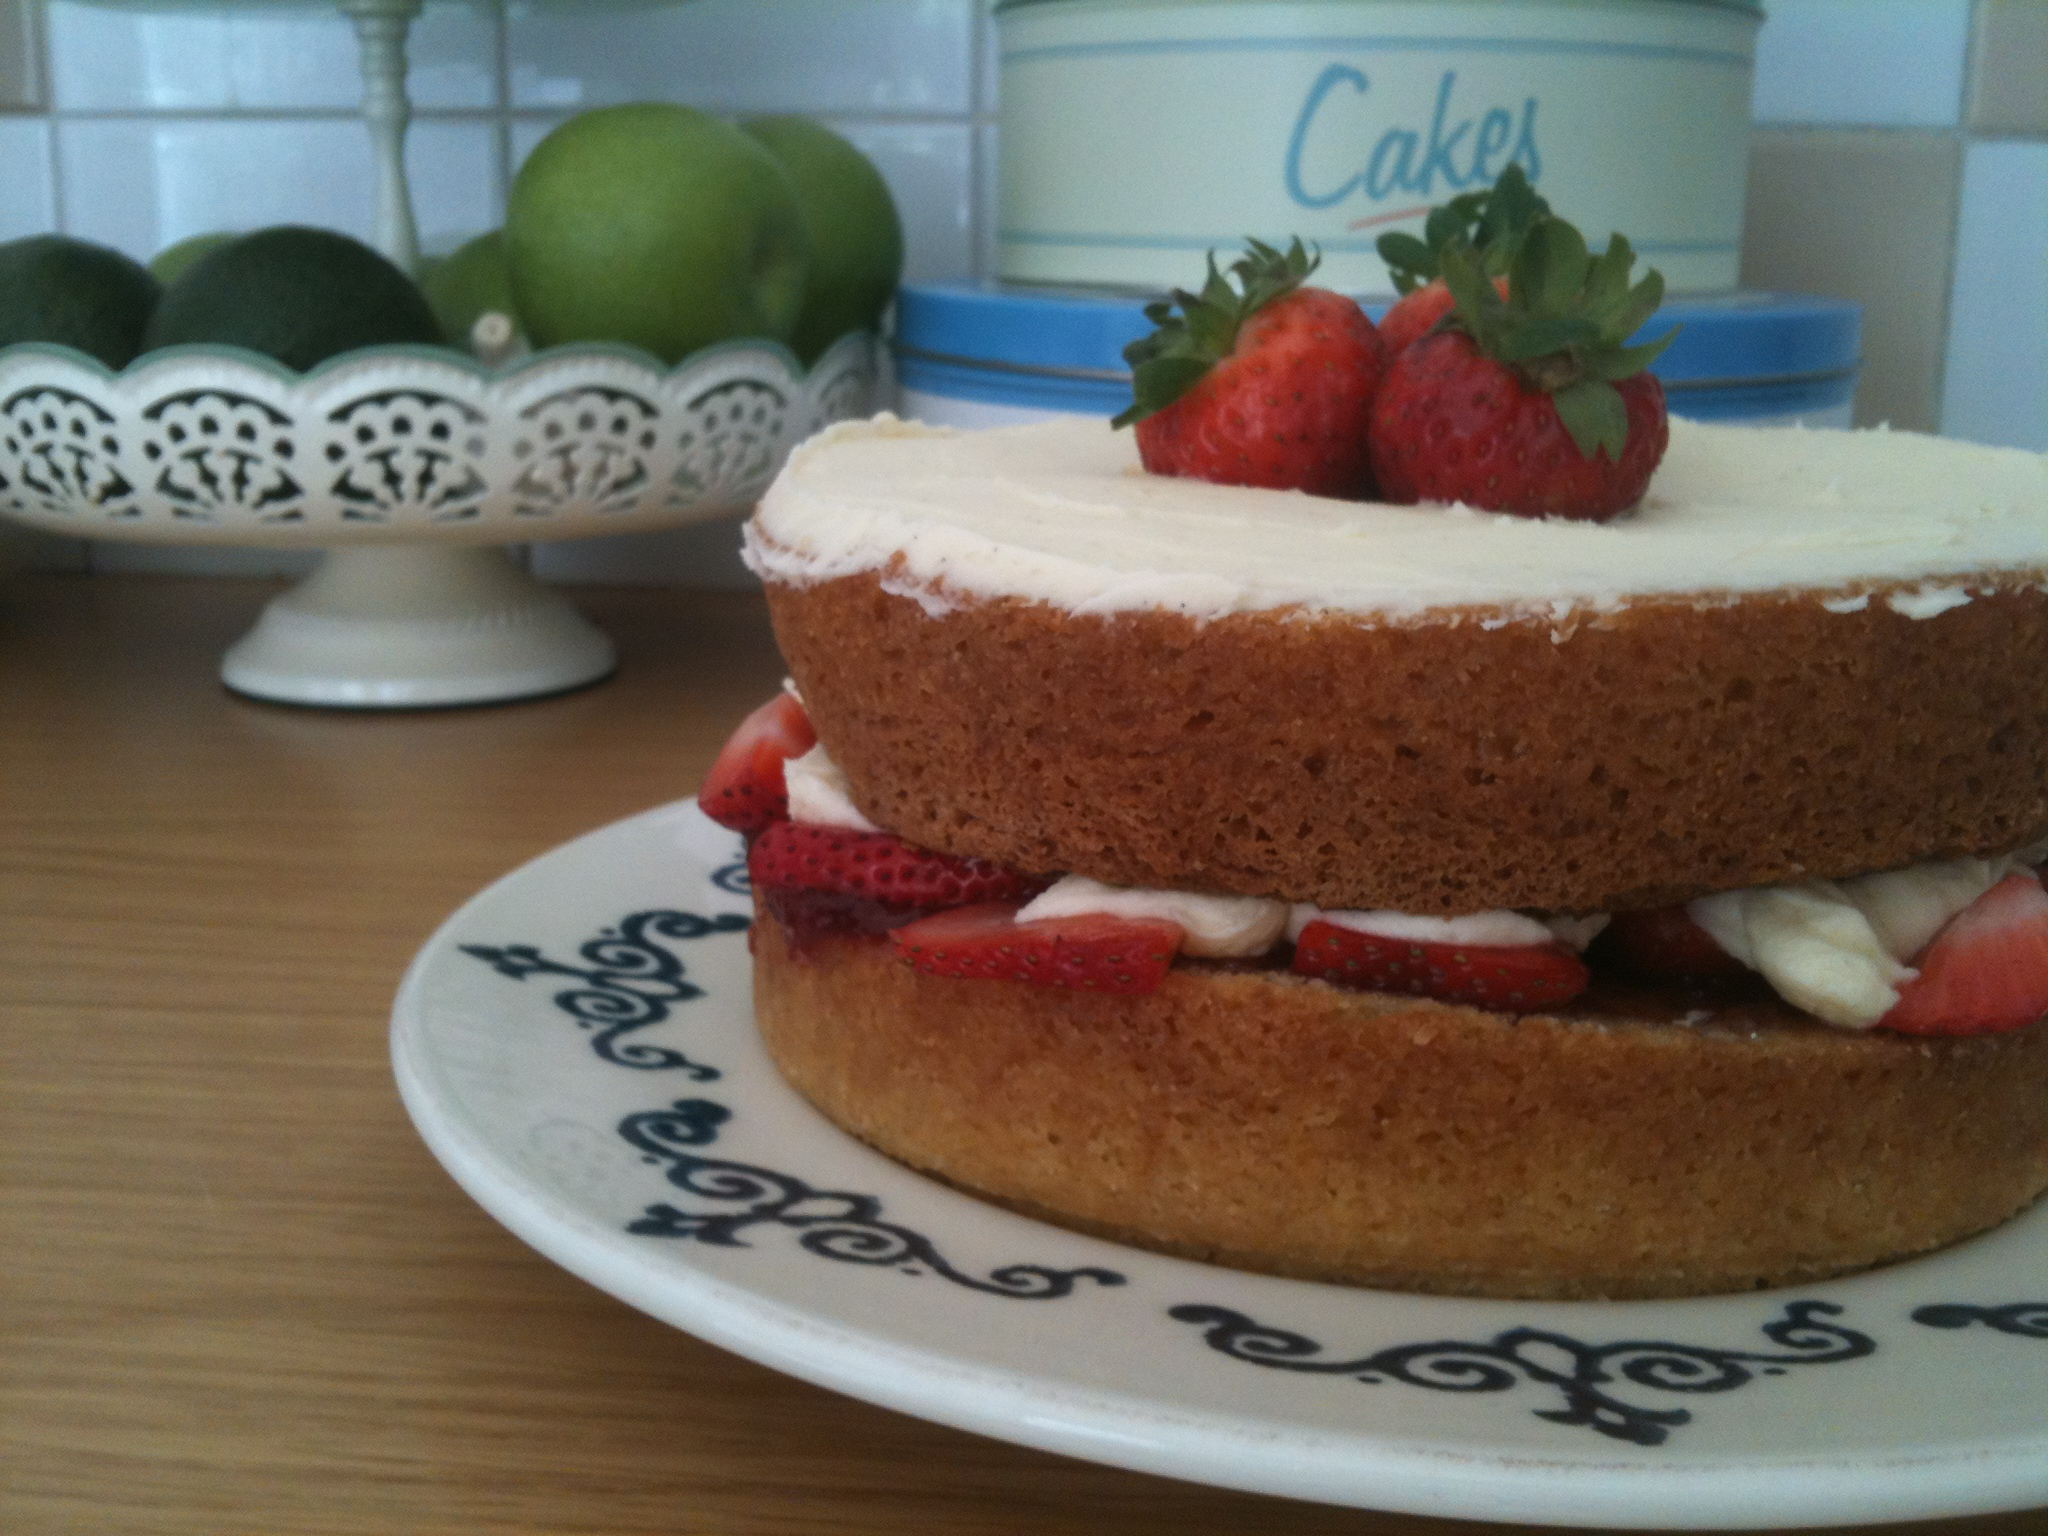 Why would a sponge cake sink in the middle?